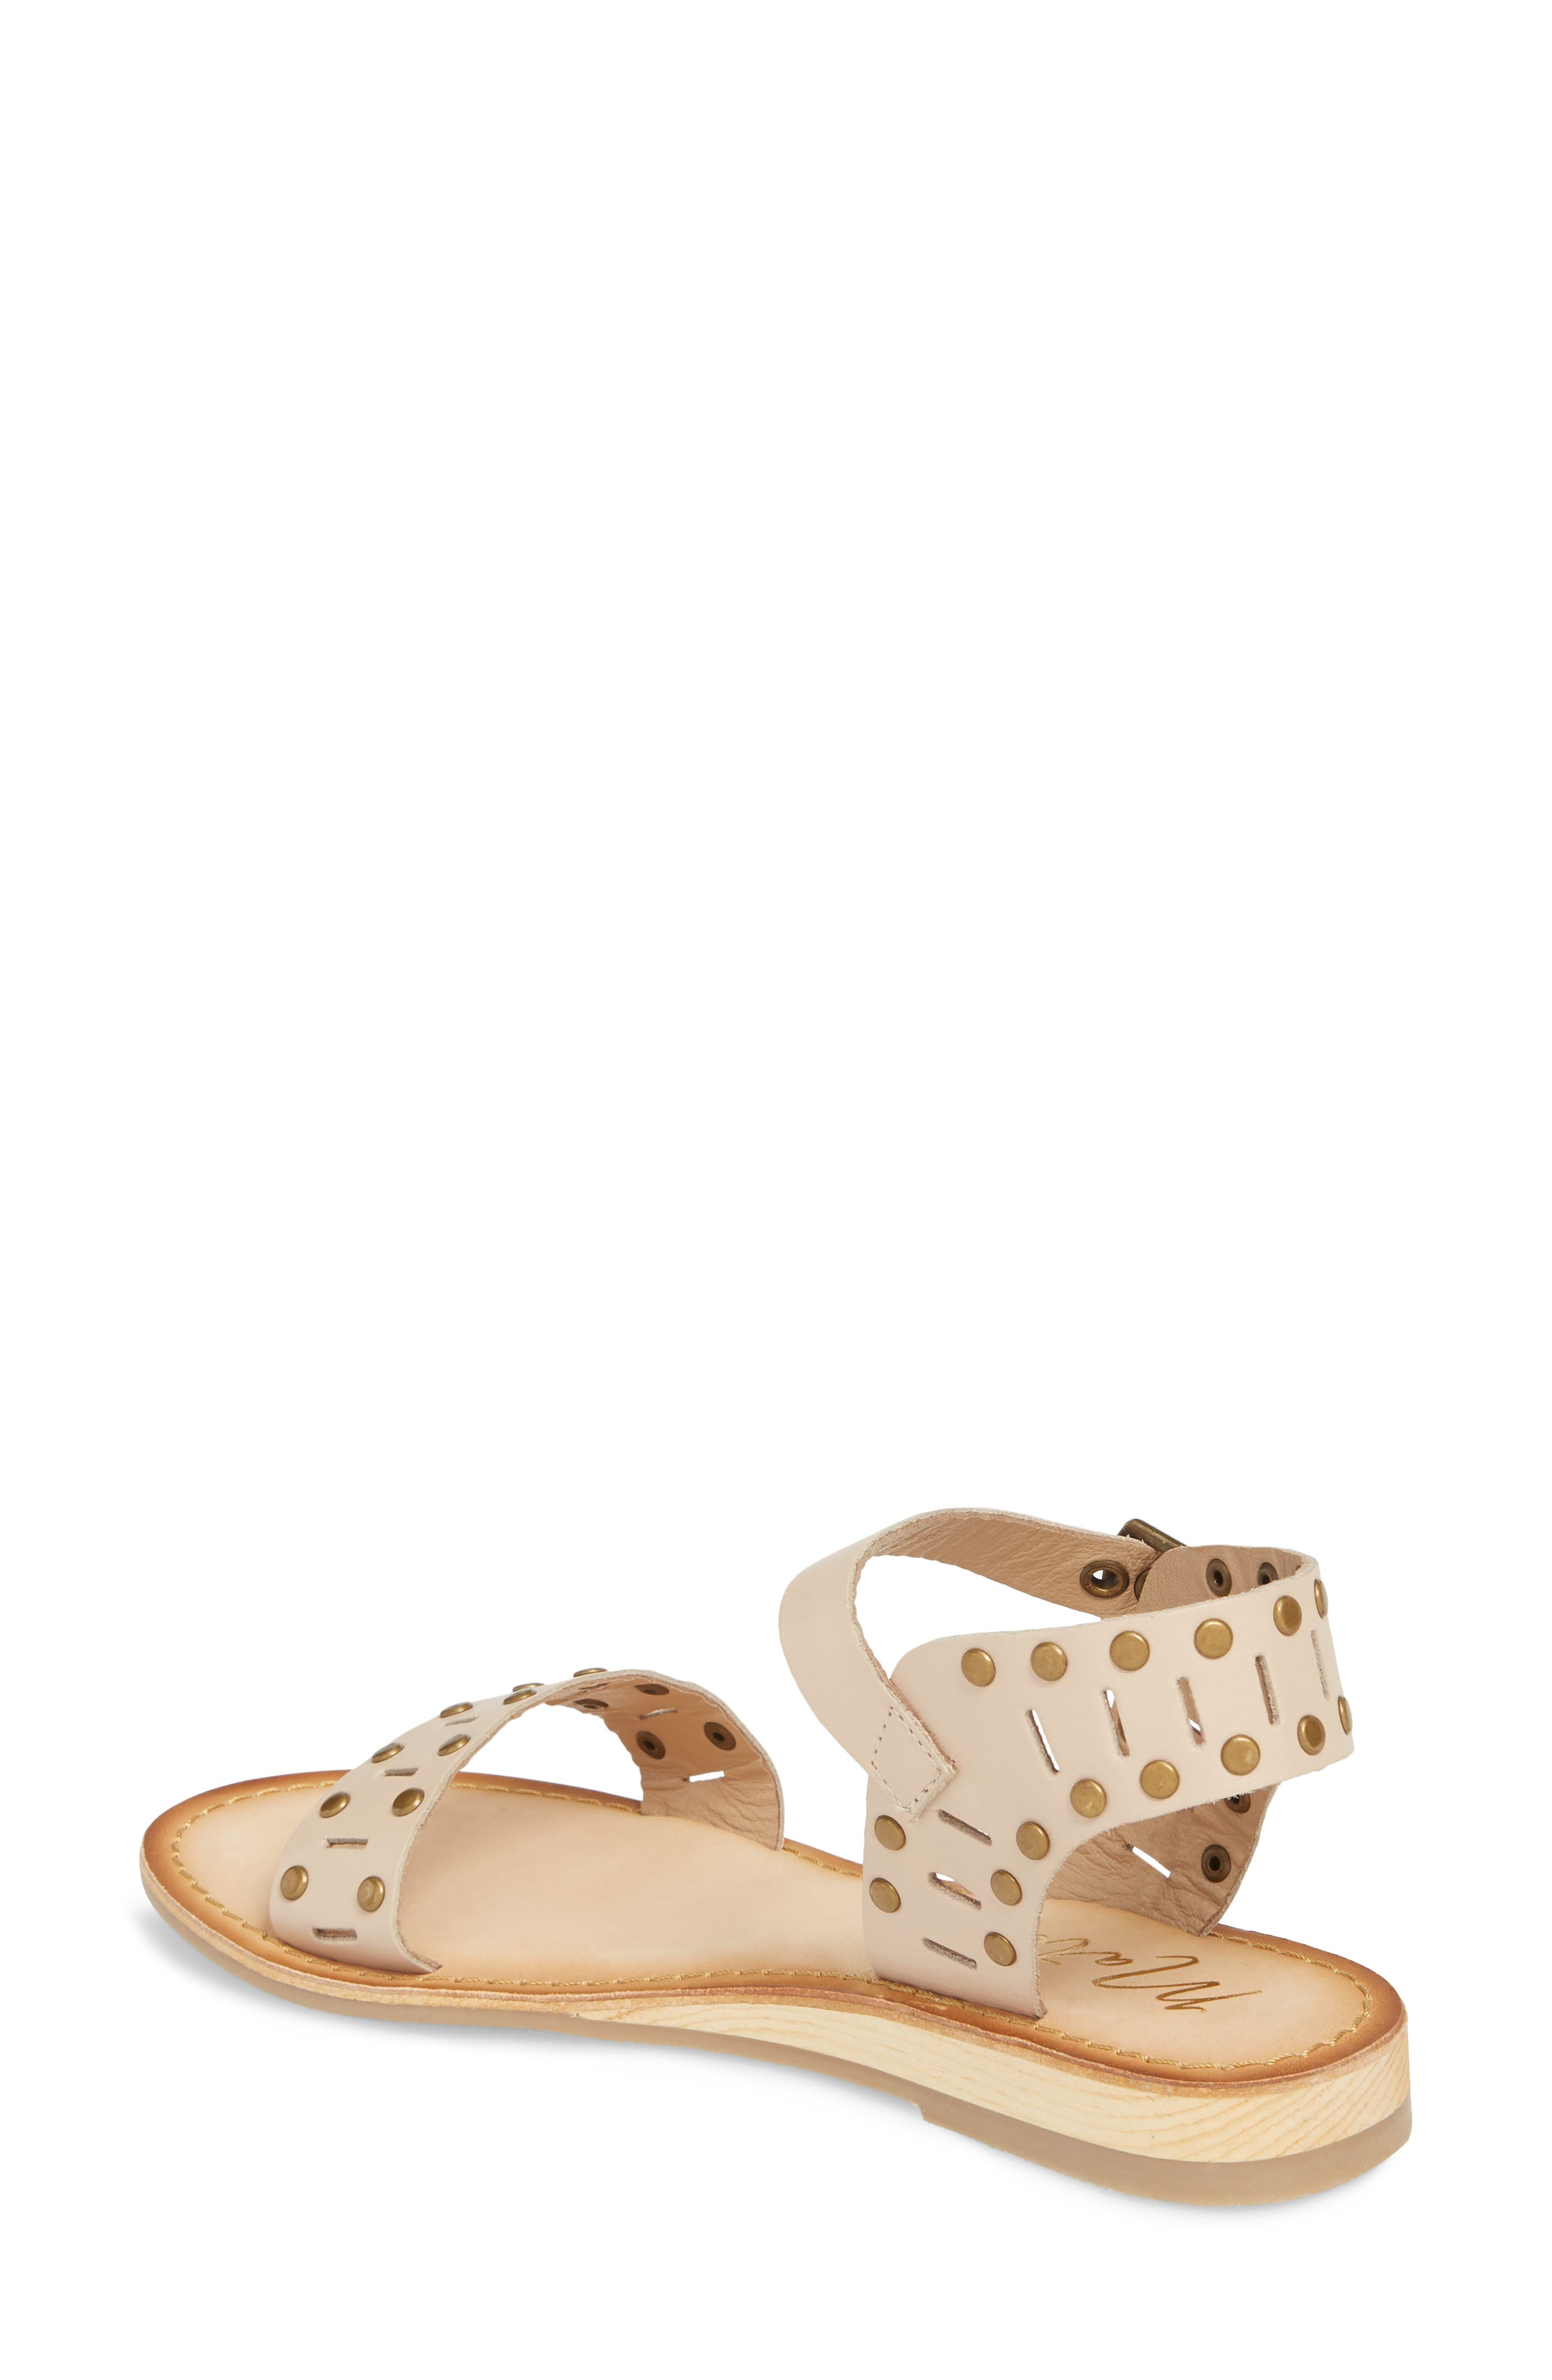 Ravenna Quarter Strap Sandal,                             Alternate thumbnail 2, color,                             NATURAL LEATHER